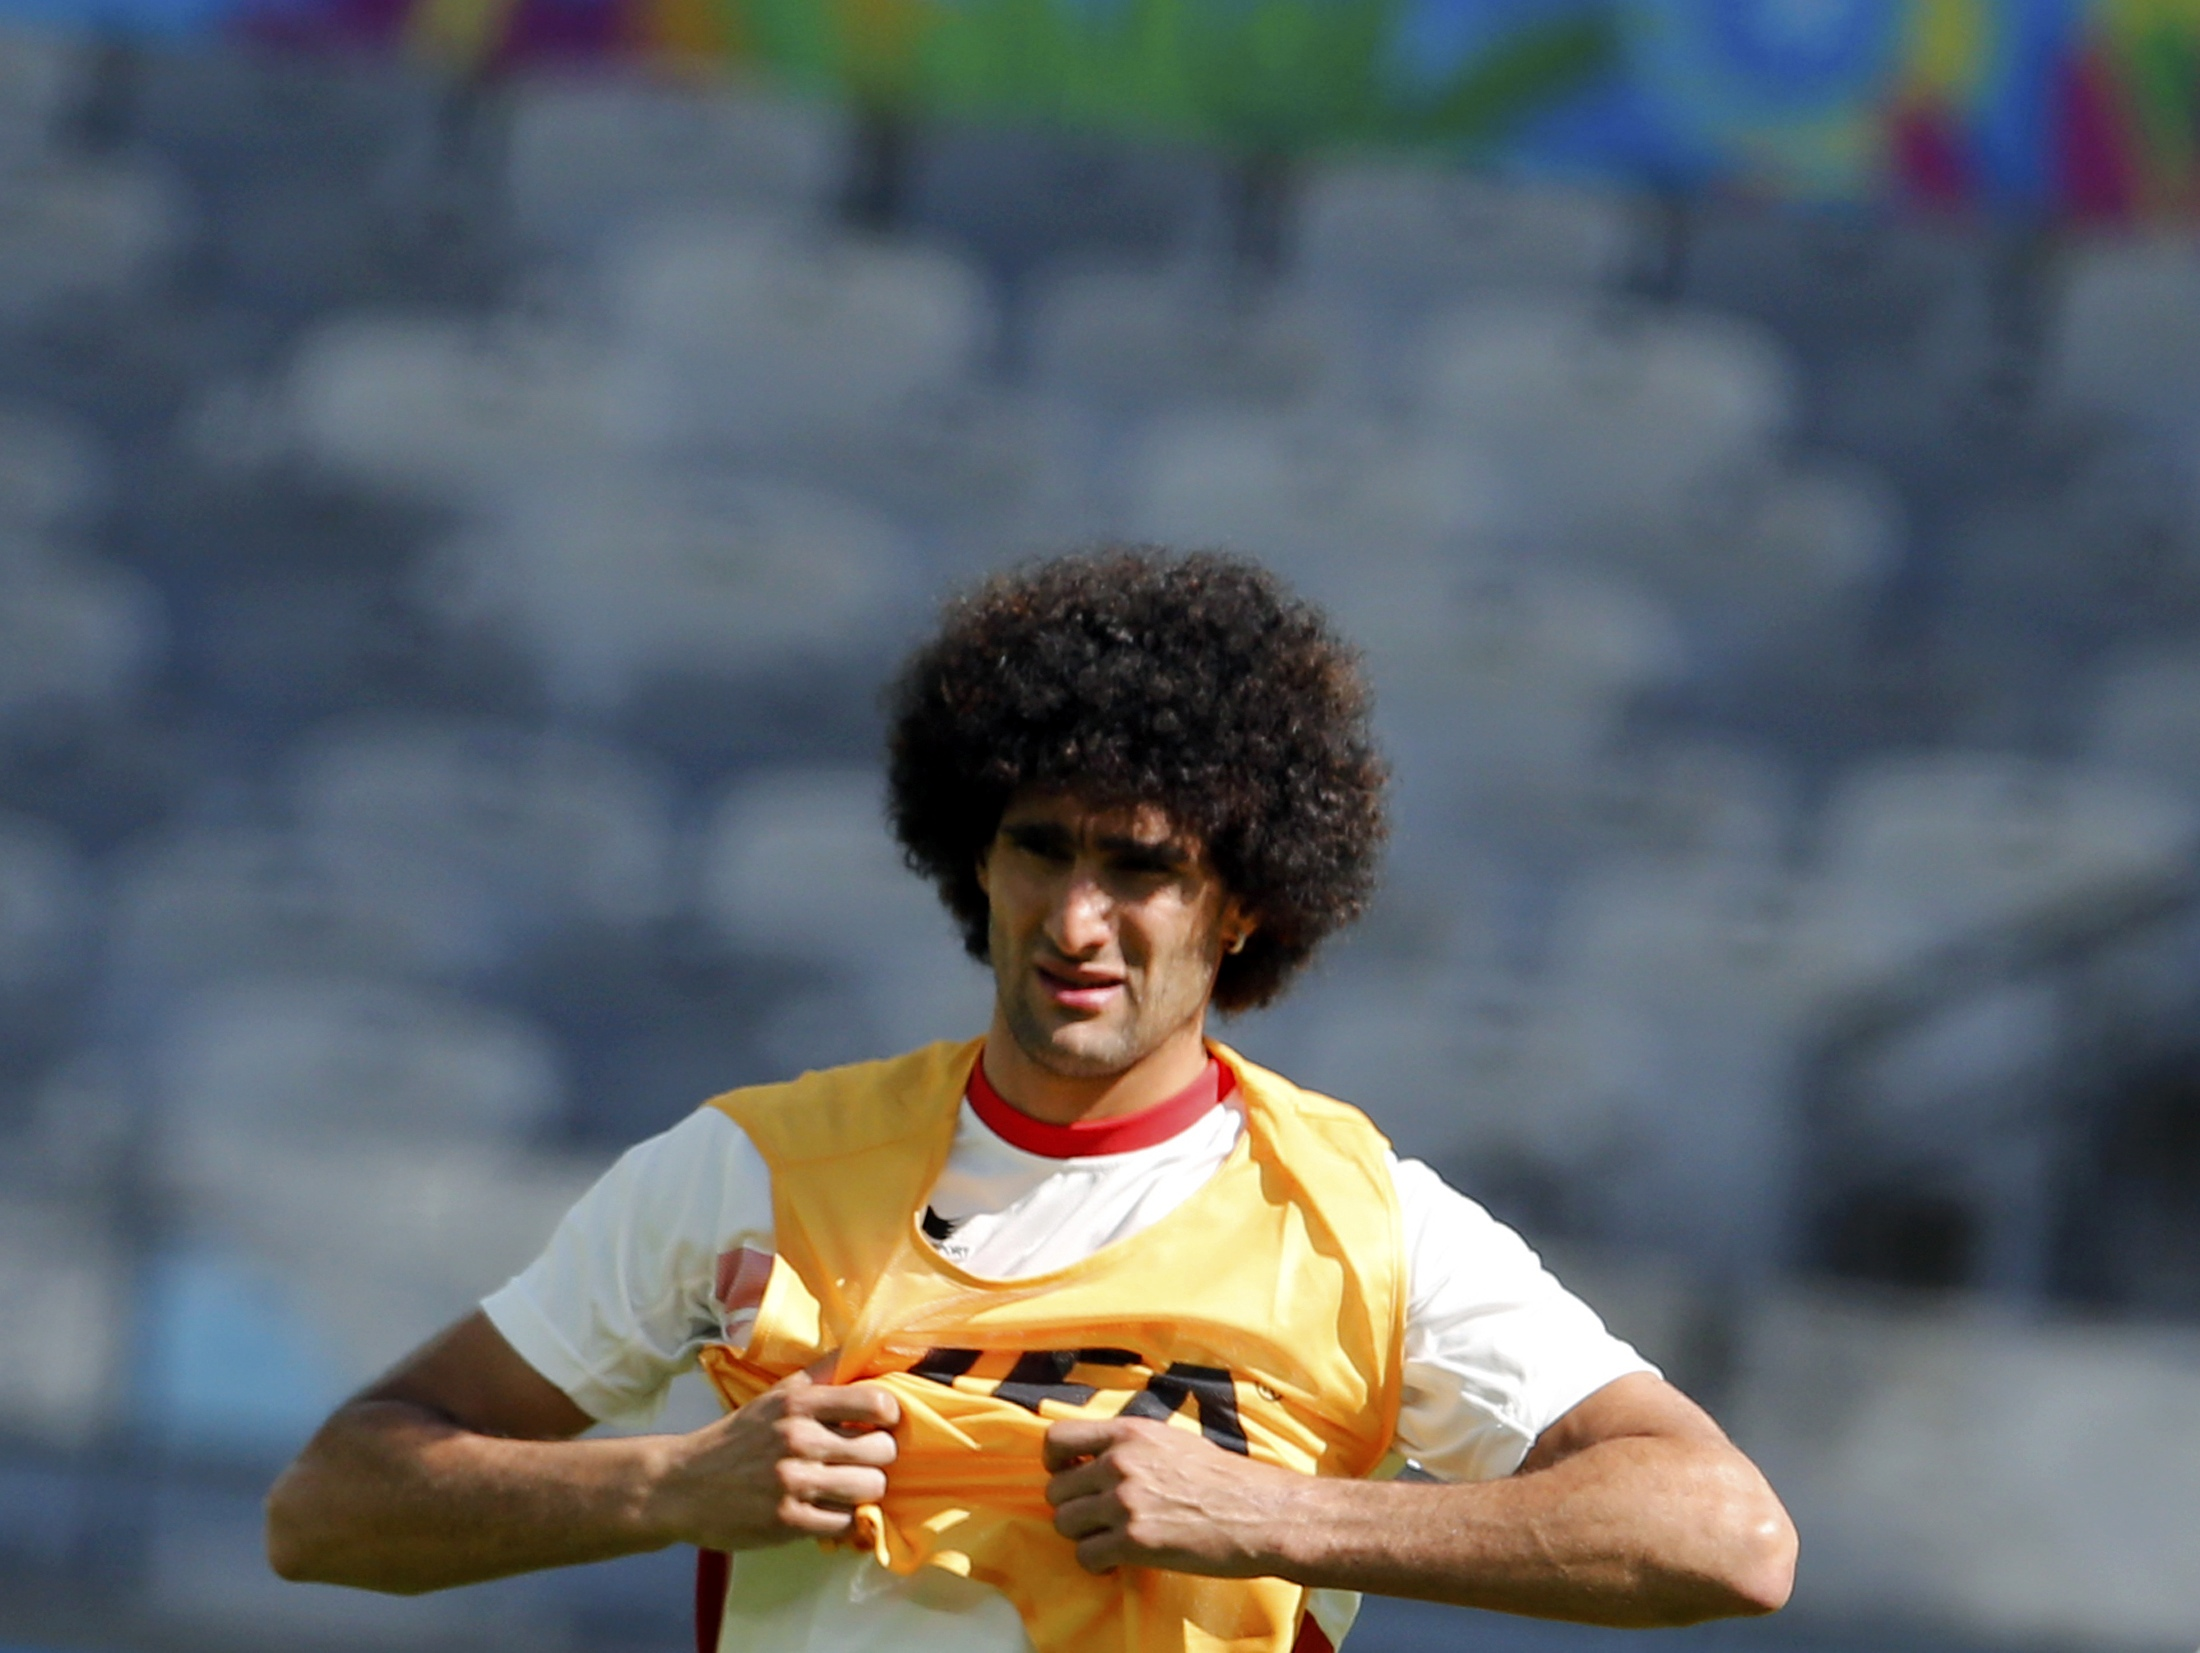 Belgium's national soccer team player Marouane Fellaini puts on a vest as he attends a training session at the Mineirao stadium in Belo Horizonte June 16, 2014. Belgium will face Algeria in their first 2014 World Cup Group H soccer match on June 17. REUTE